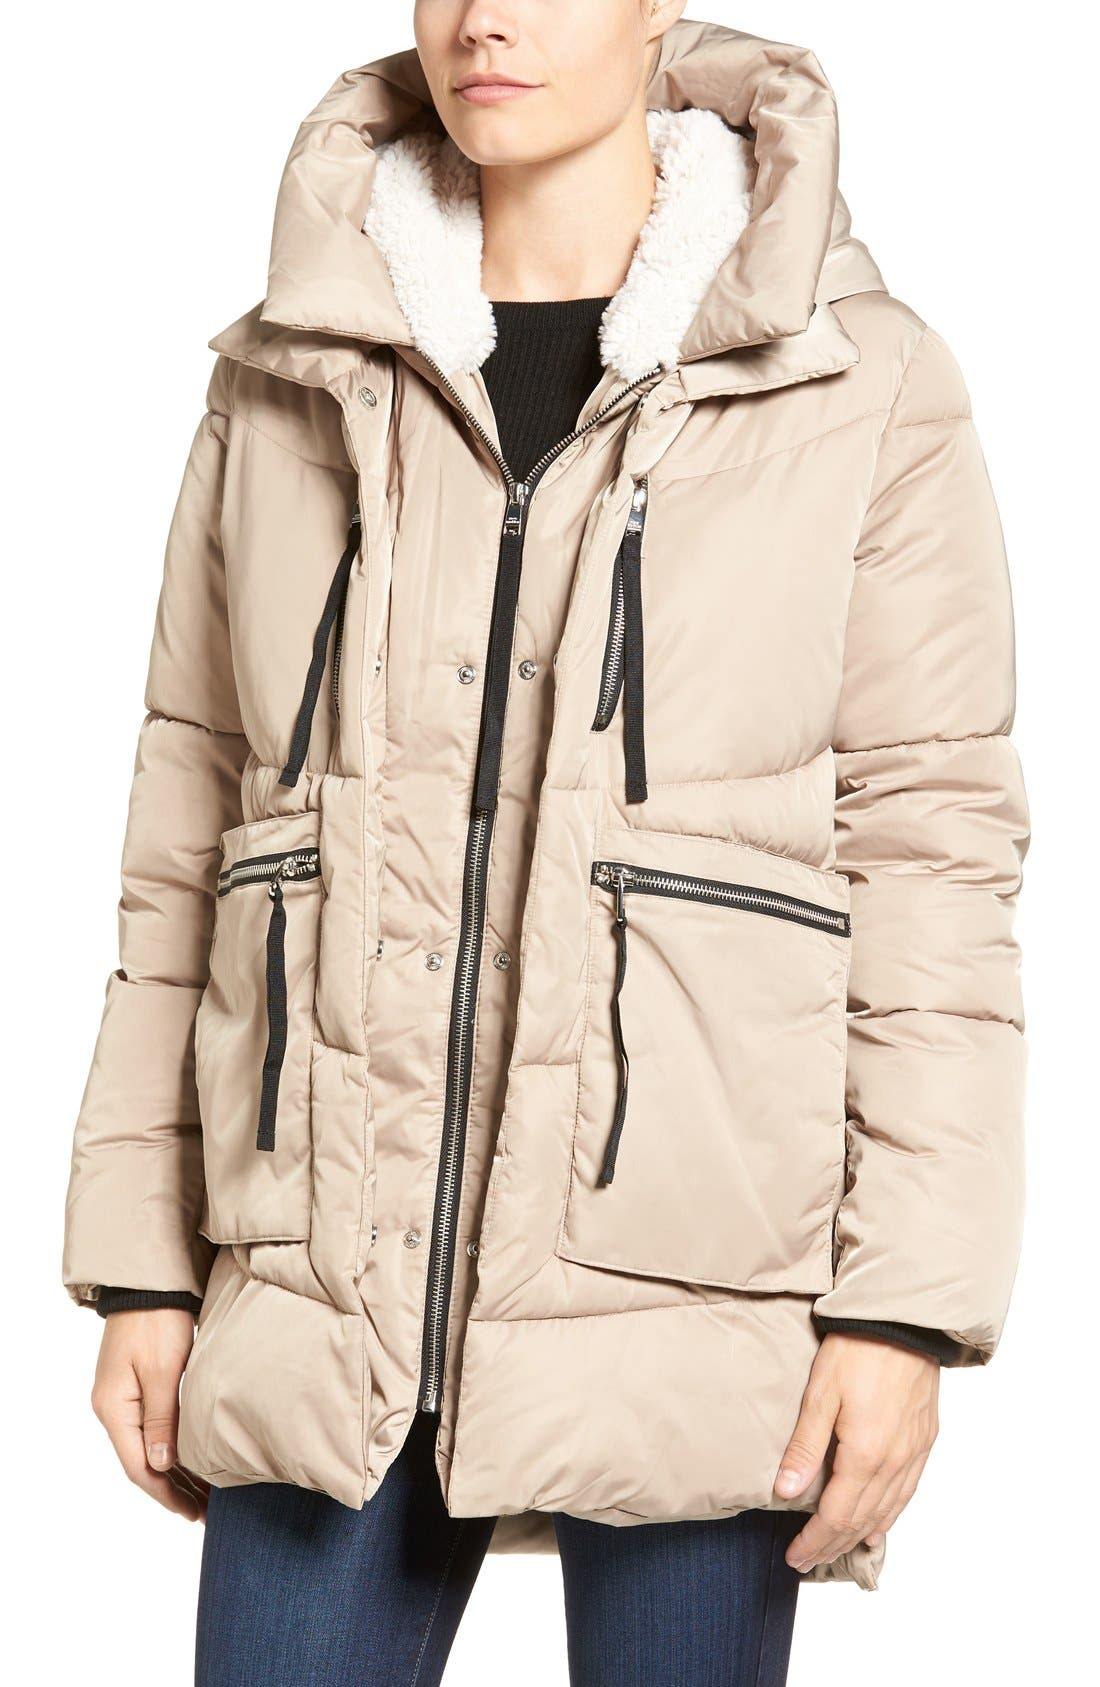 Hooded Puffer Jacket with Faux Shearling Trim,                             Alternate thumbnail 4, color,                             Sand